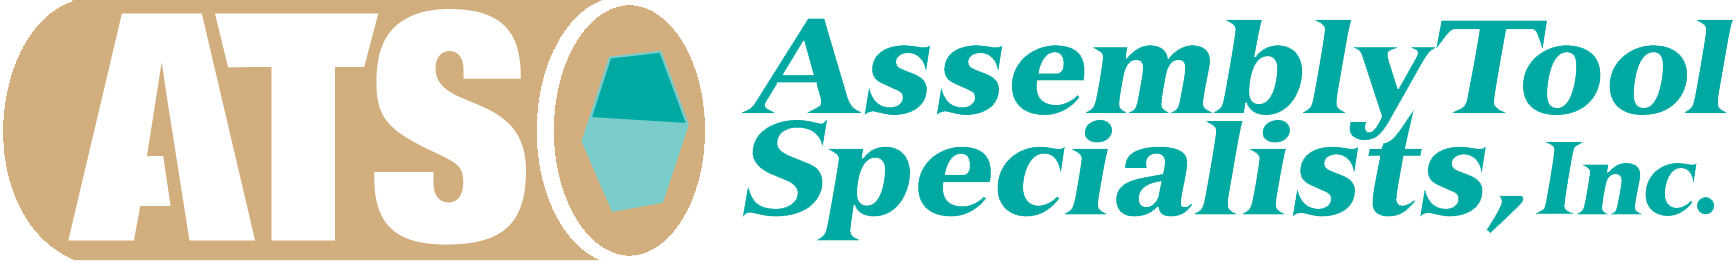 Assembly Tool Specialists